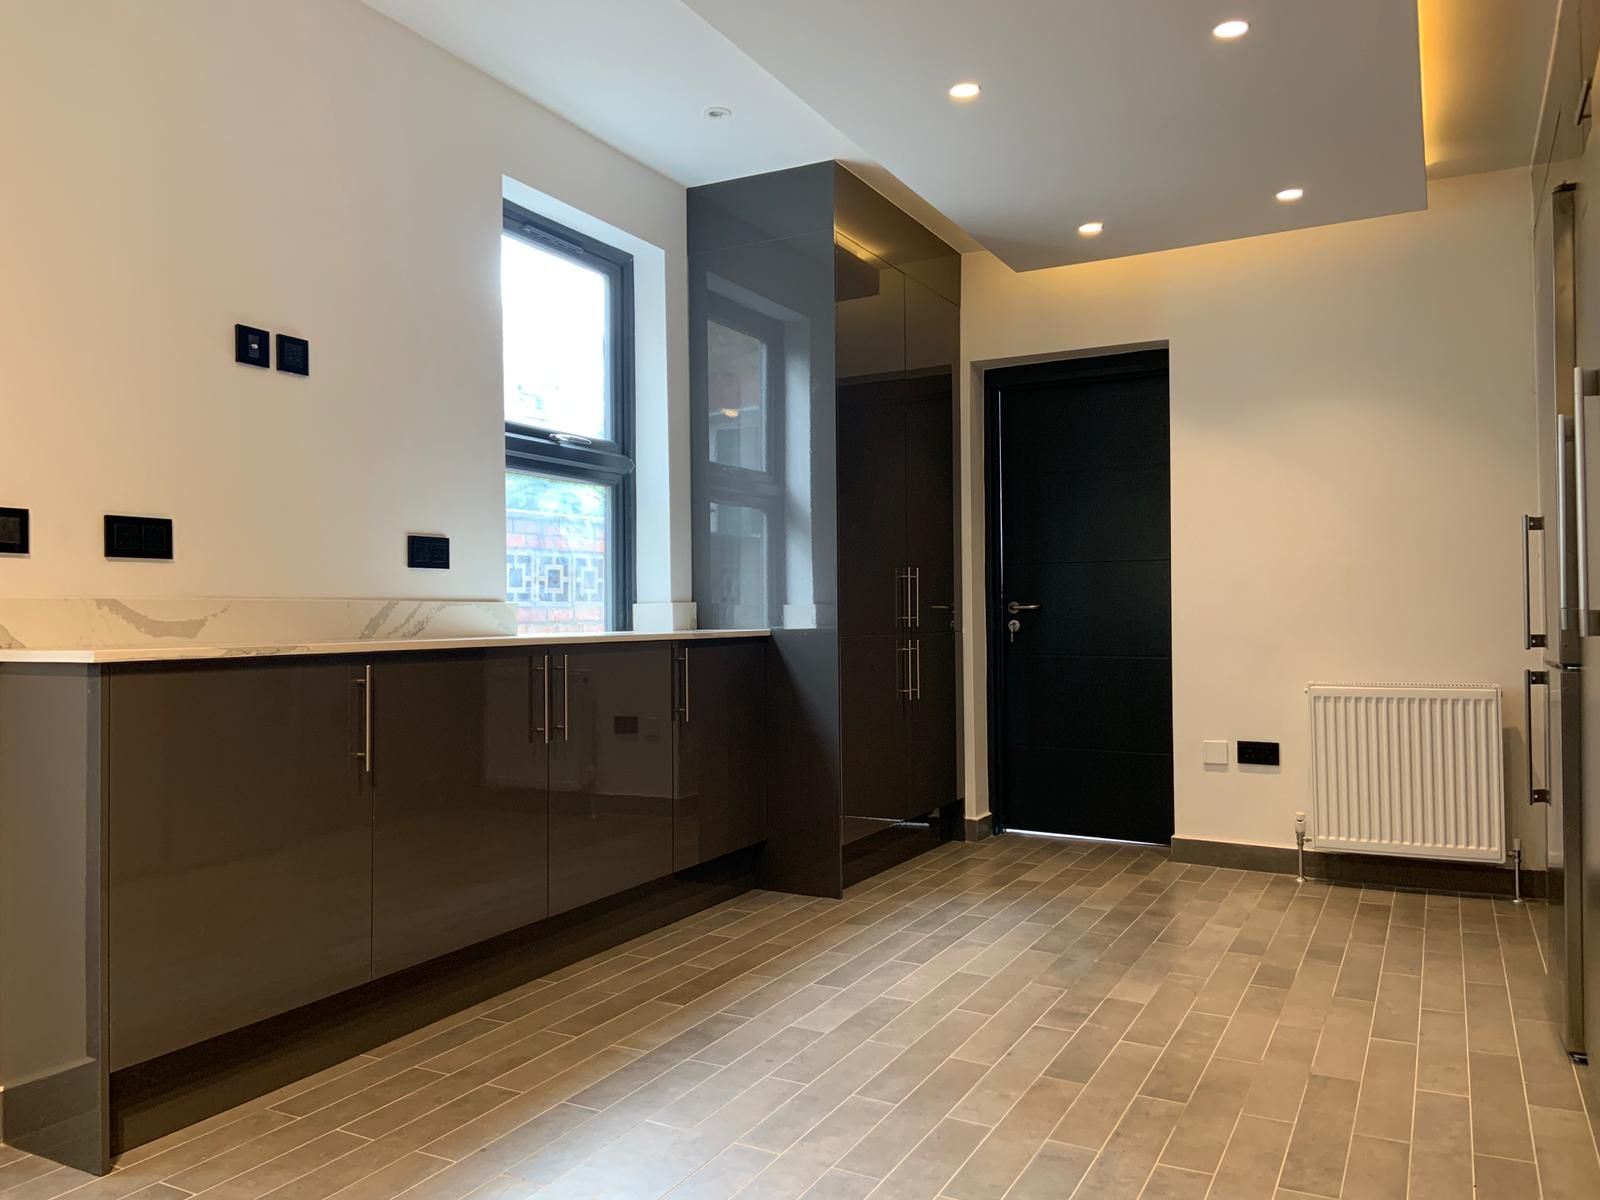 1 bedroom shared house To Let in Willesden Green - Modern Integrated Appliances